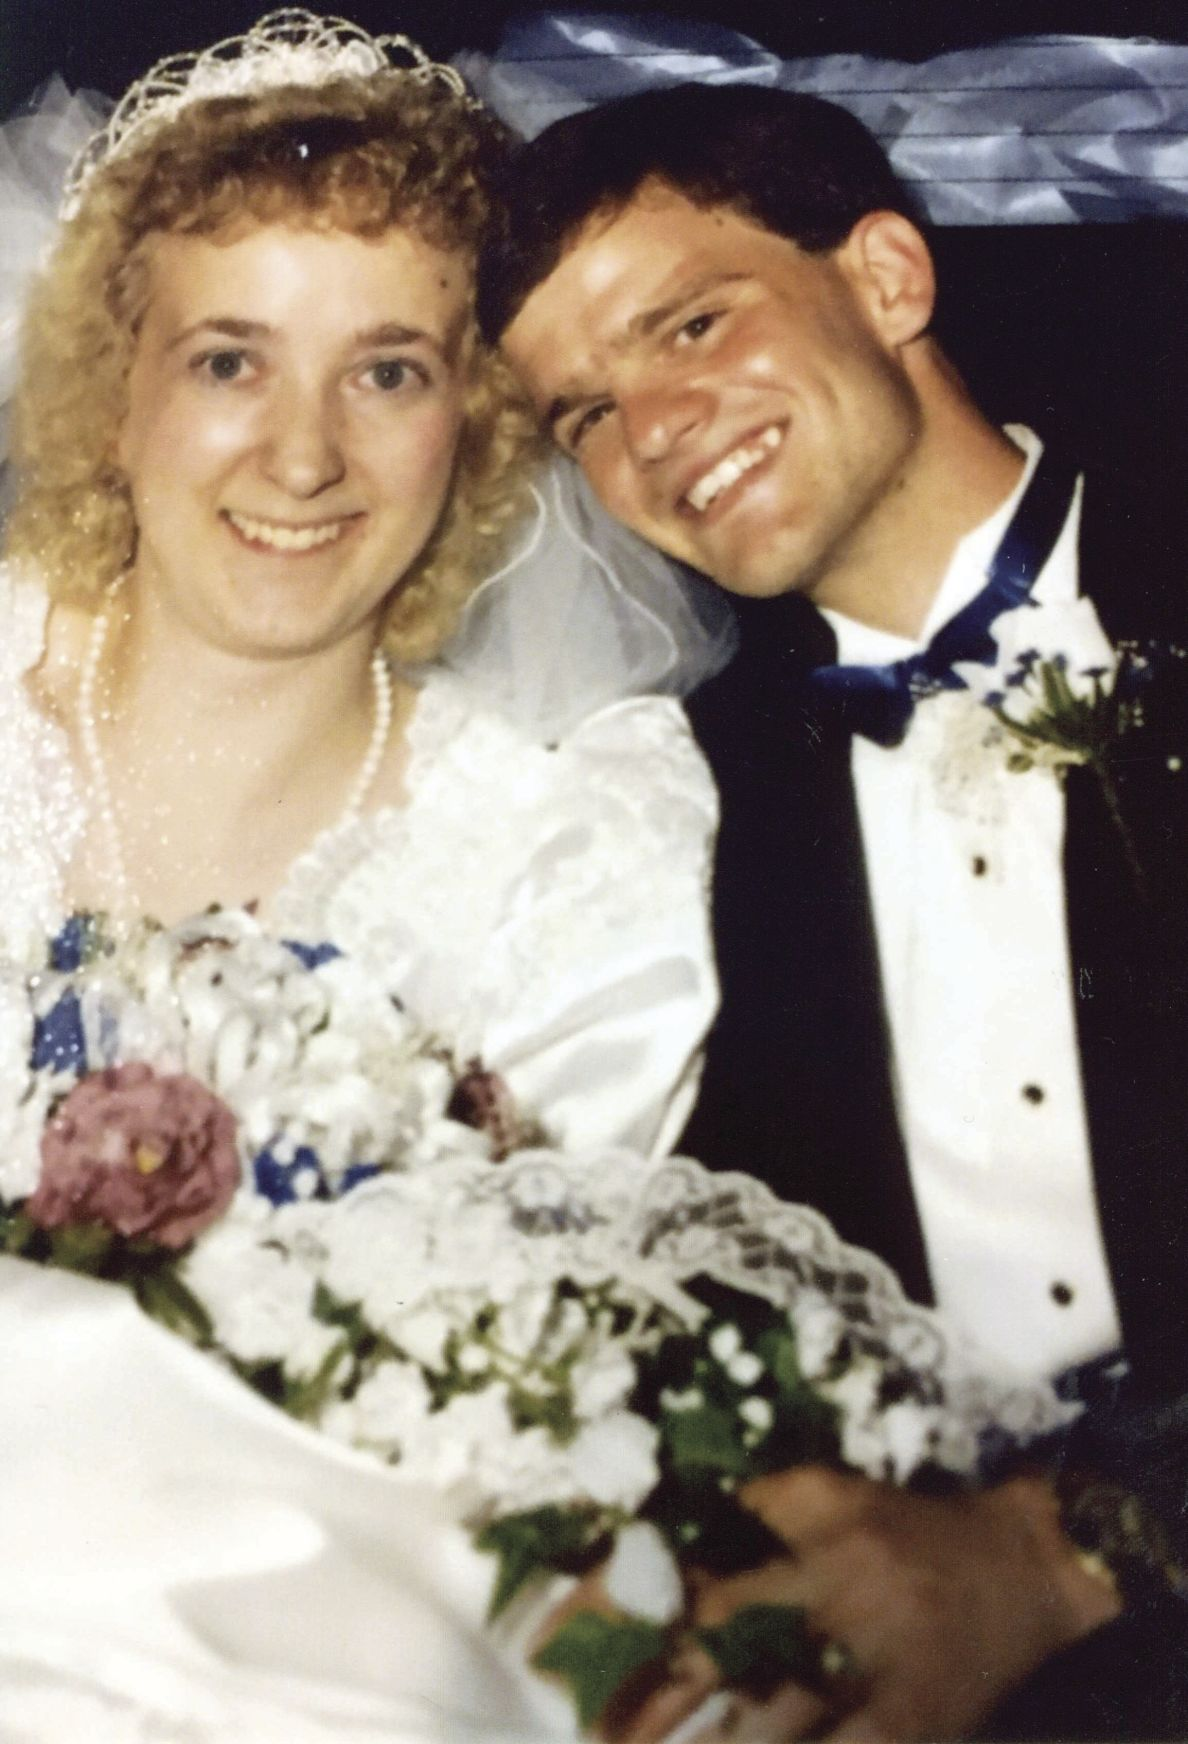 GARY AND MONICA BREWER 25 YEARS AGO...